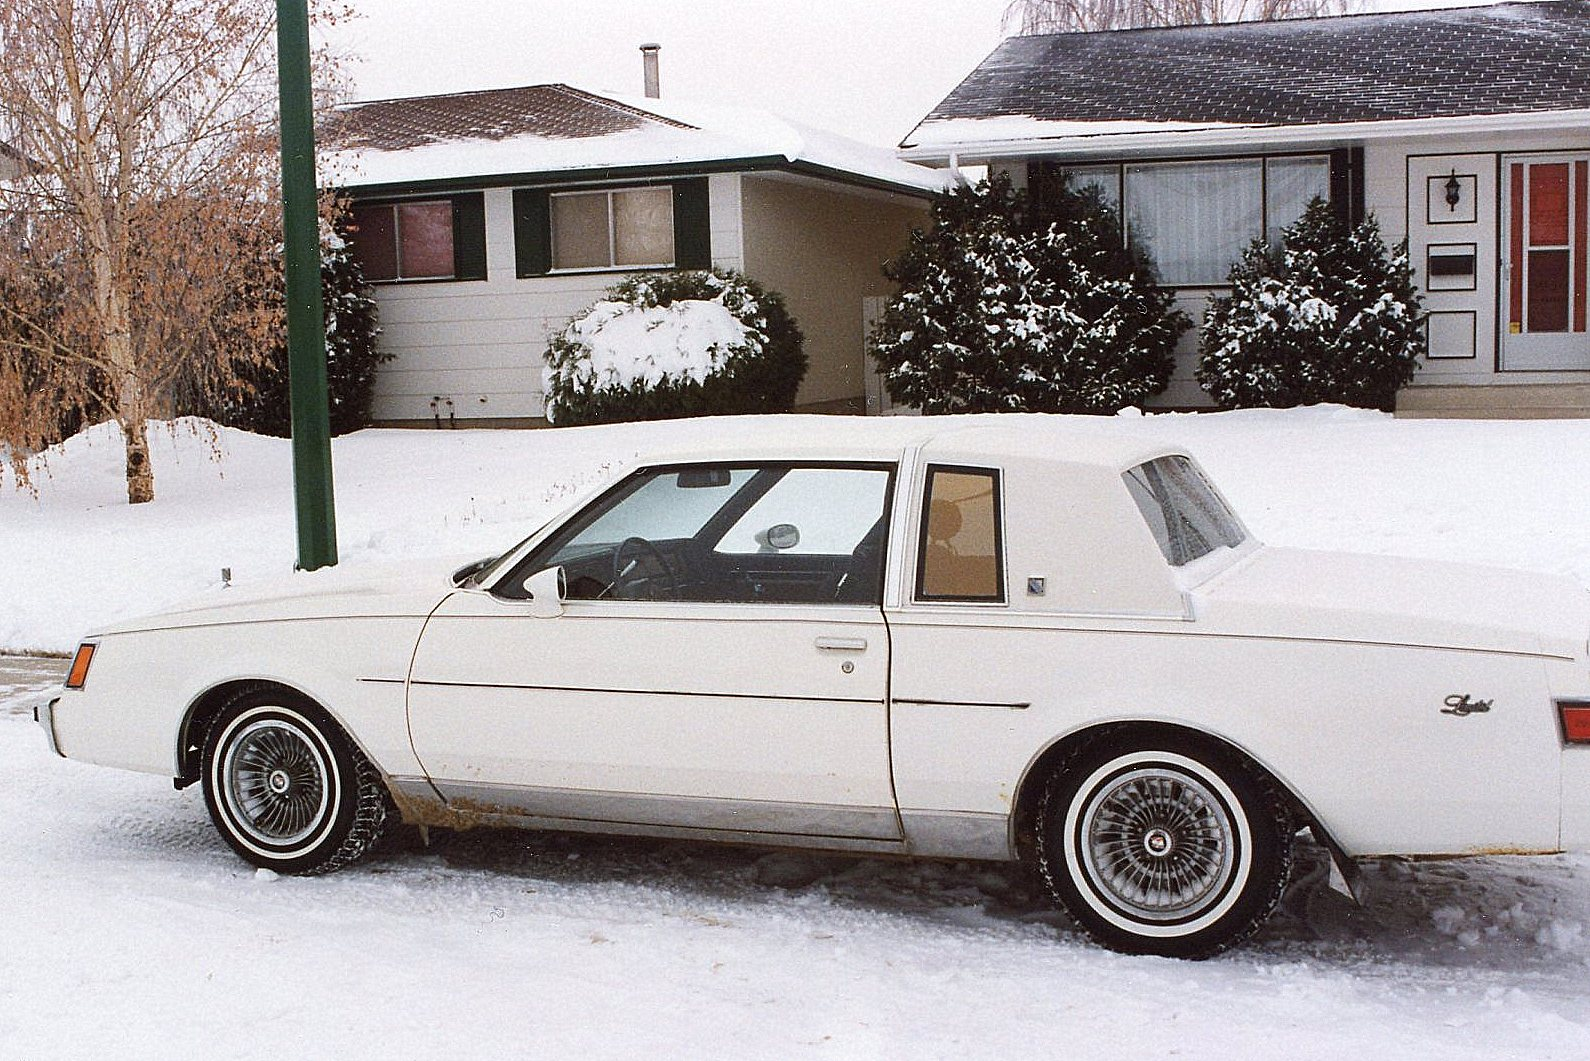 1982 Buick Regal Limited Coupe picture, exterior